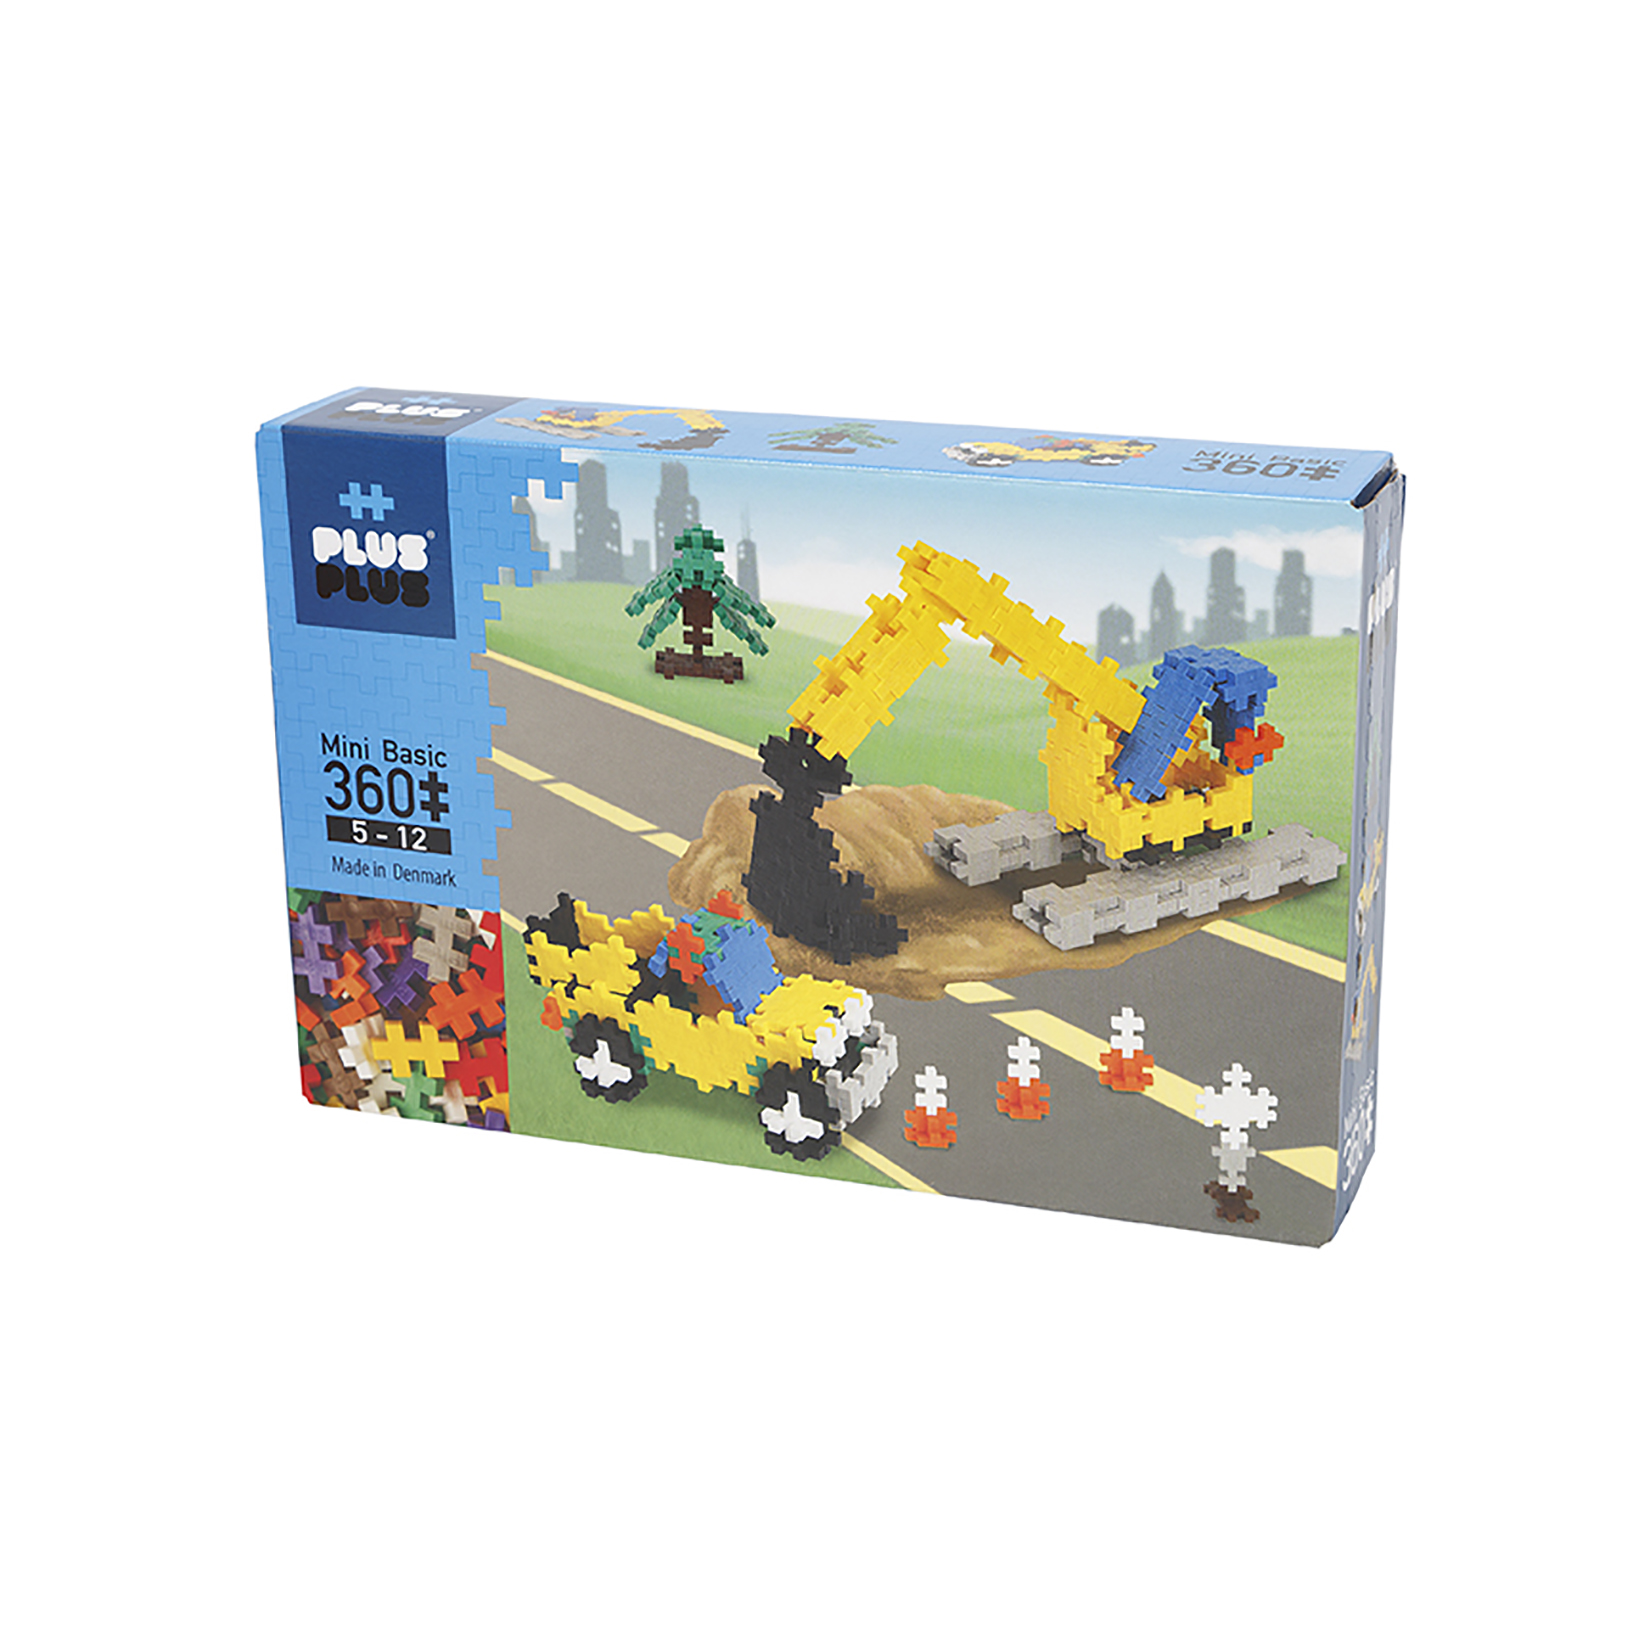 360 Piece Construction Building Set